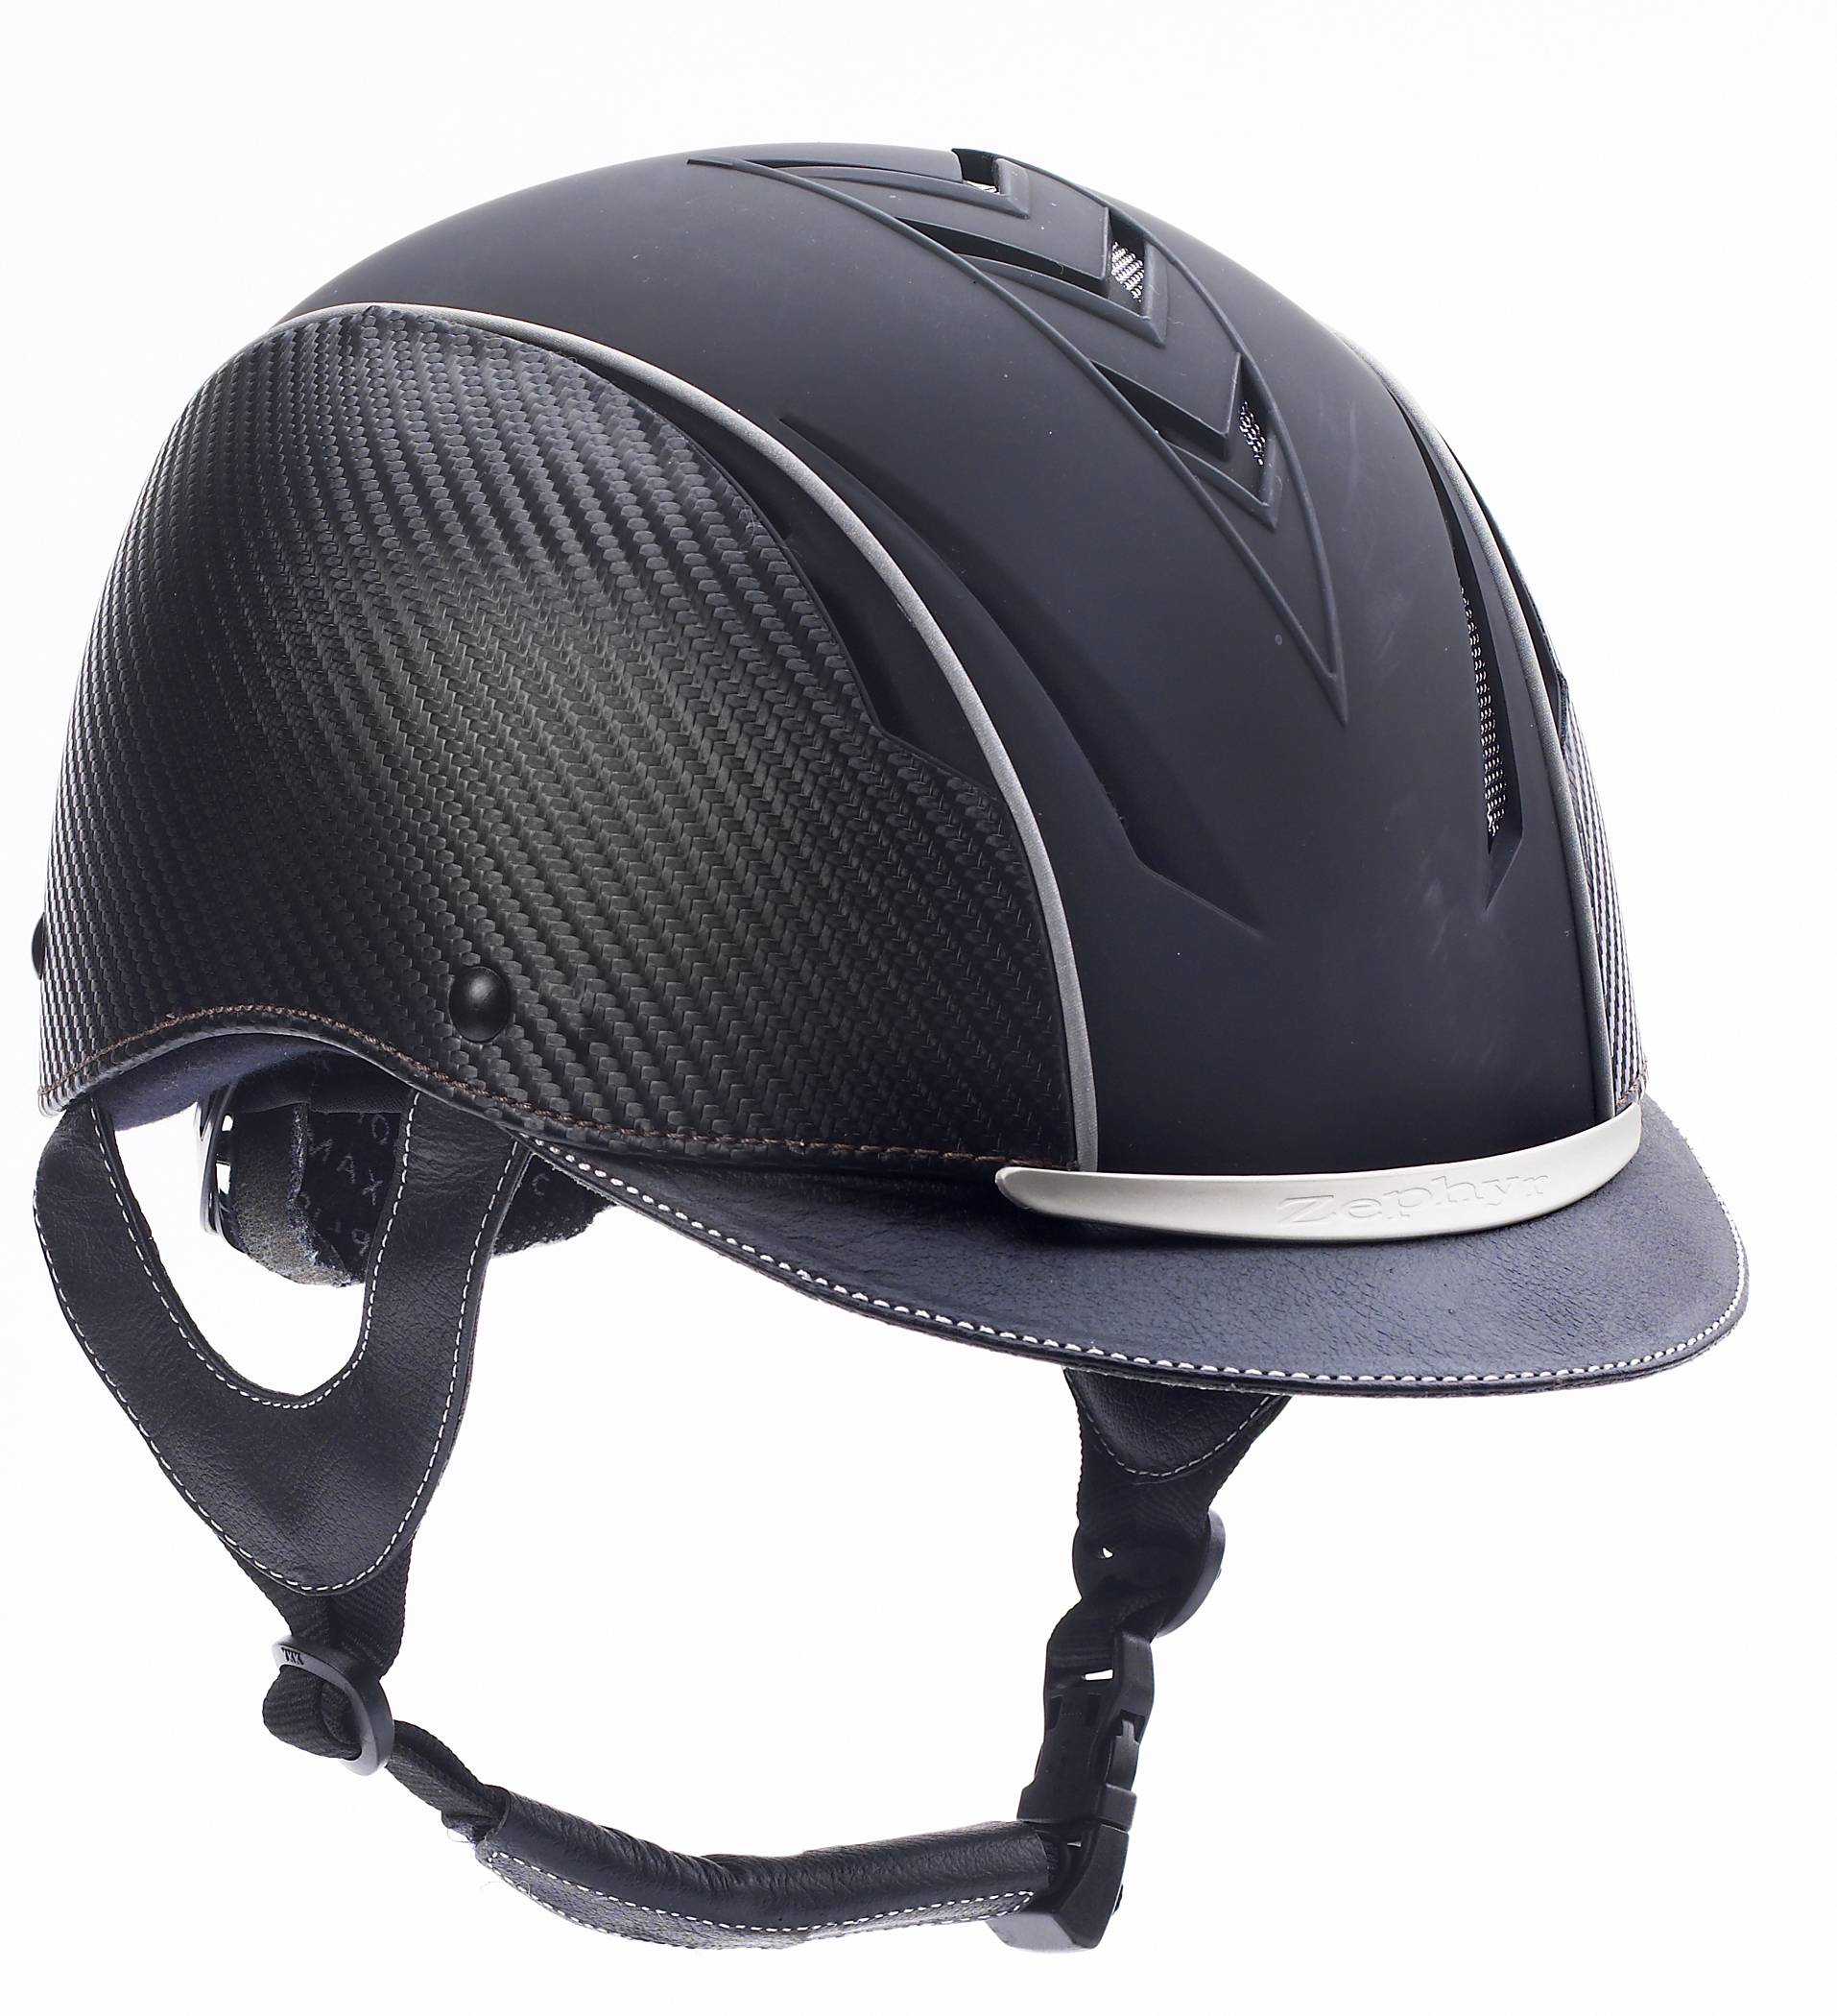 Ovation Z-8 Elite II Helmet